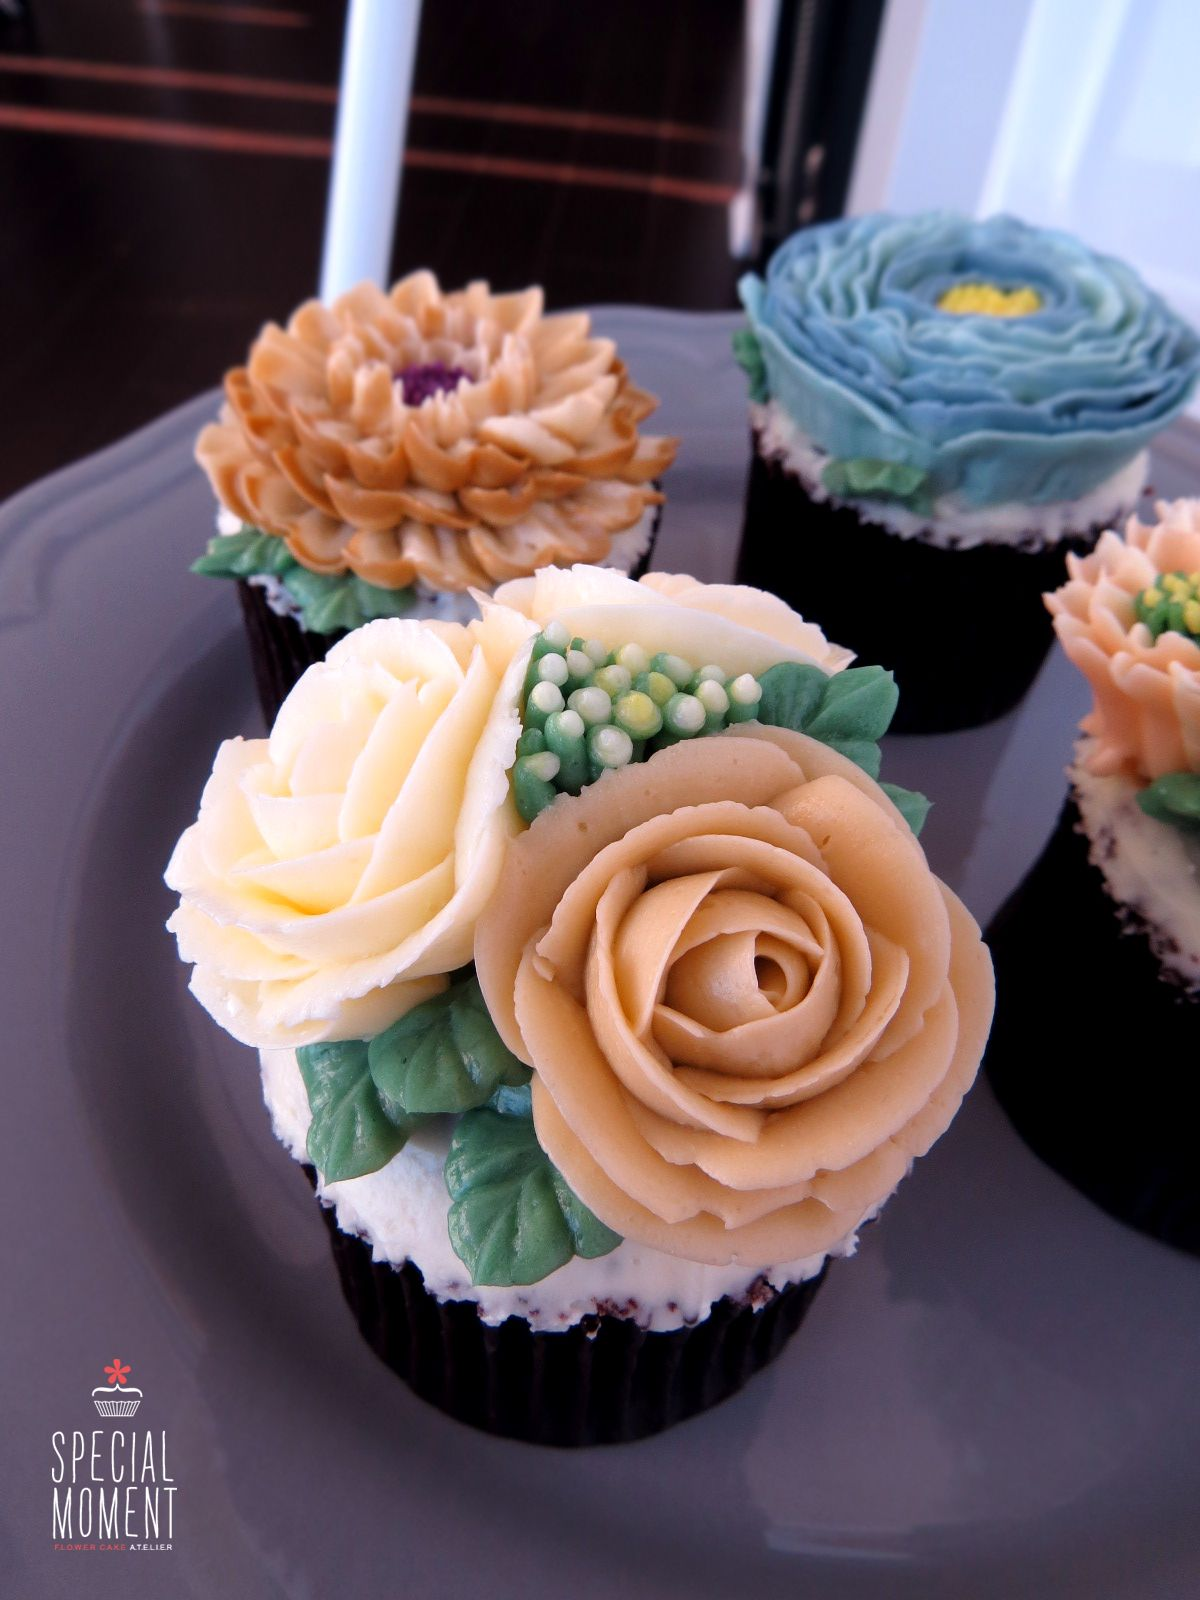 Choco Chocolate Flower Buttercream Cupcake For Mothers Friend